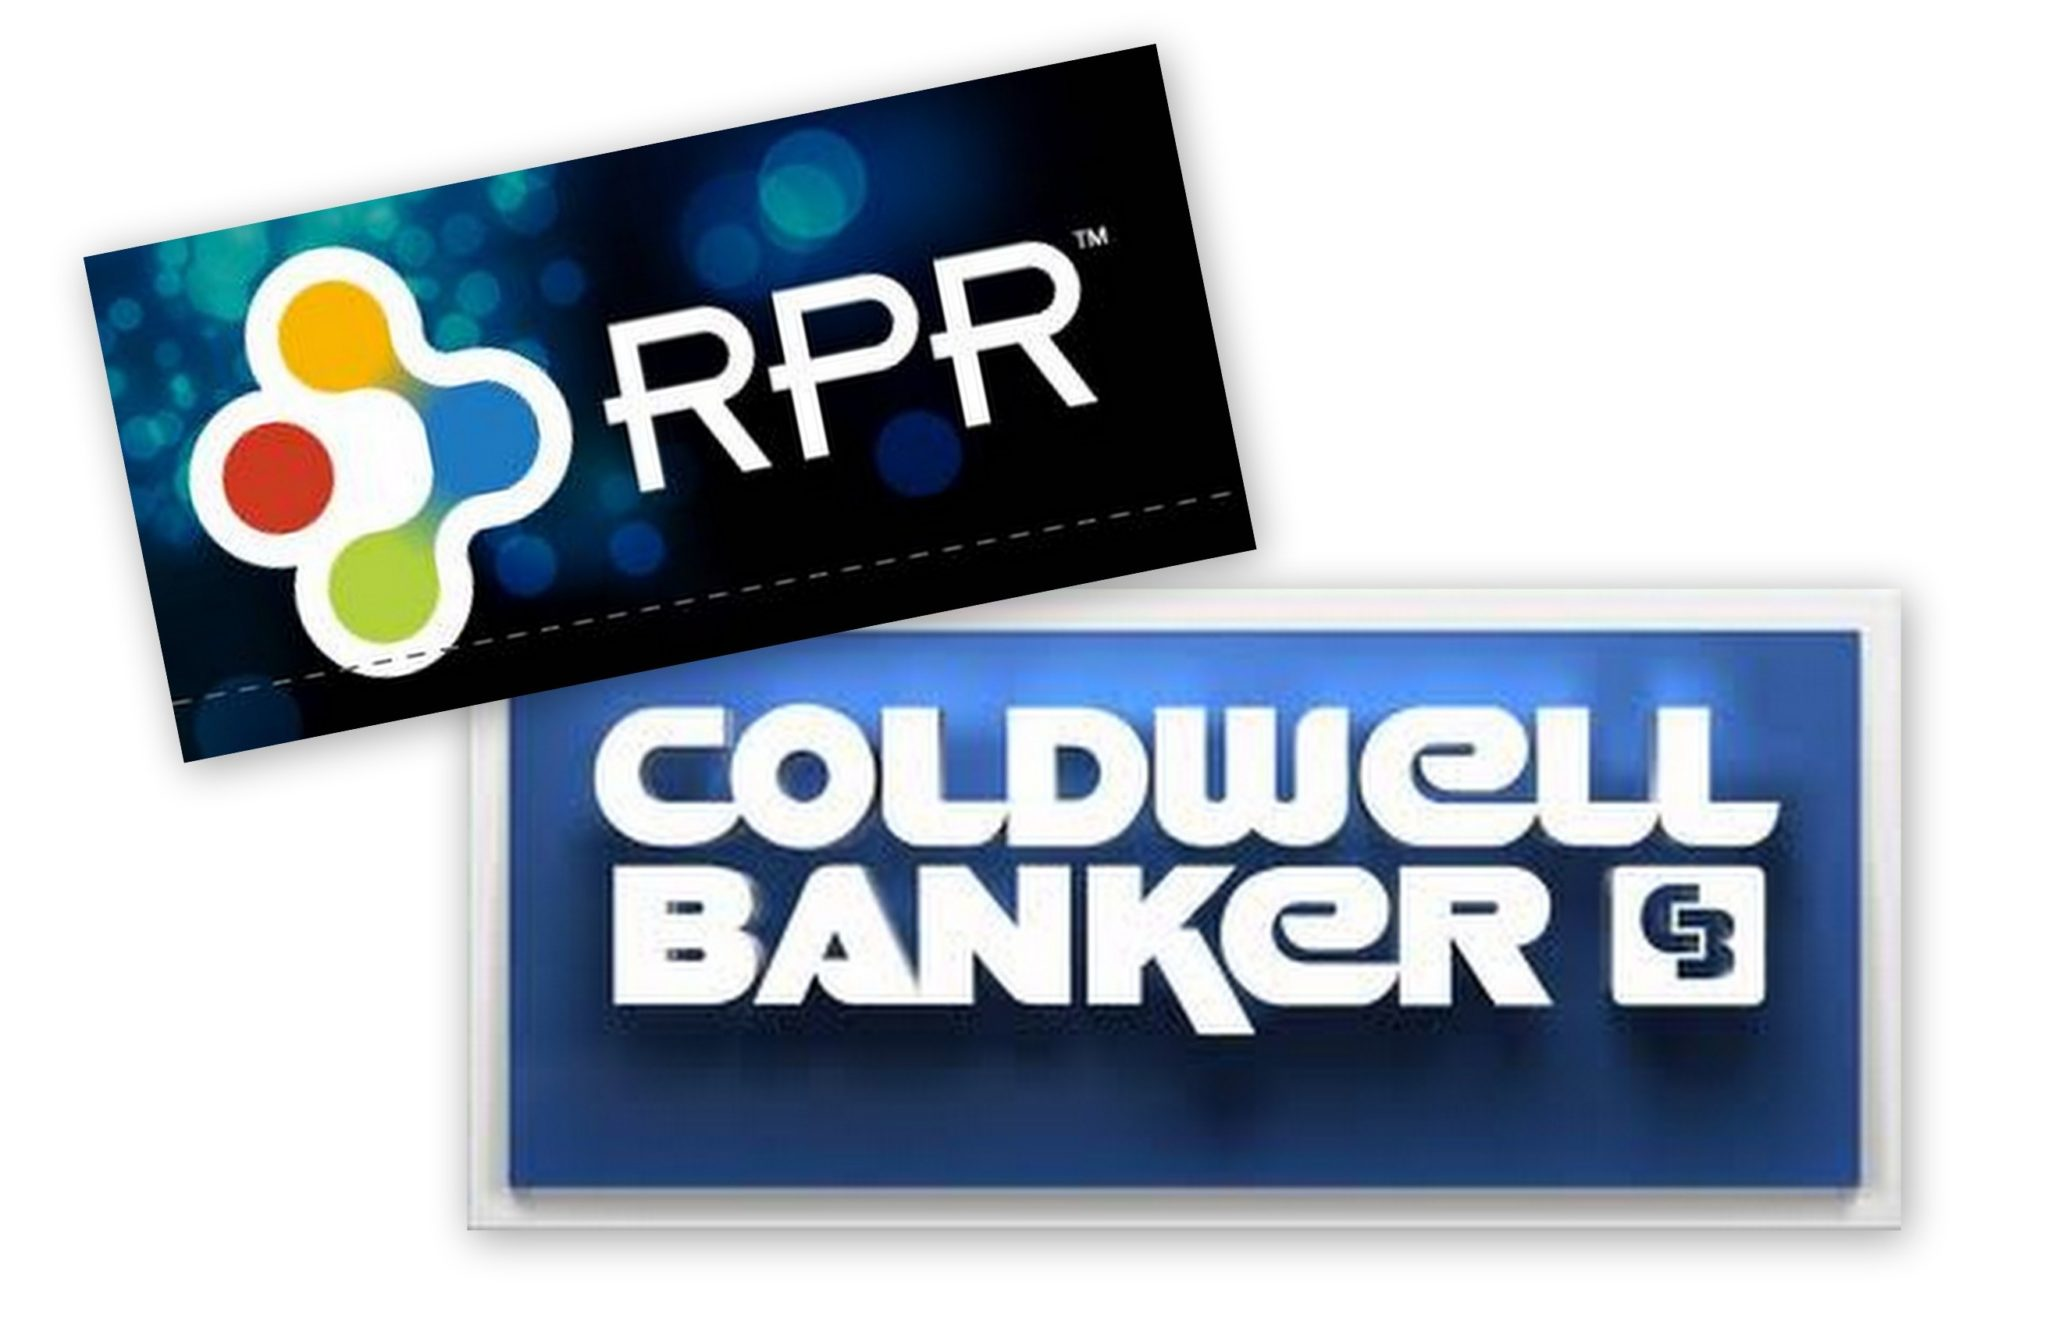 RPR has a new ally: Coldwell Banker